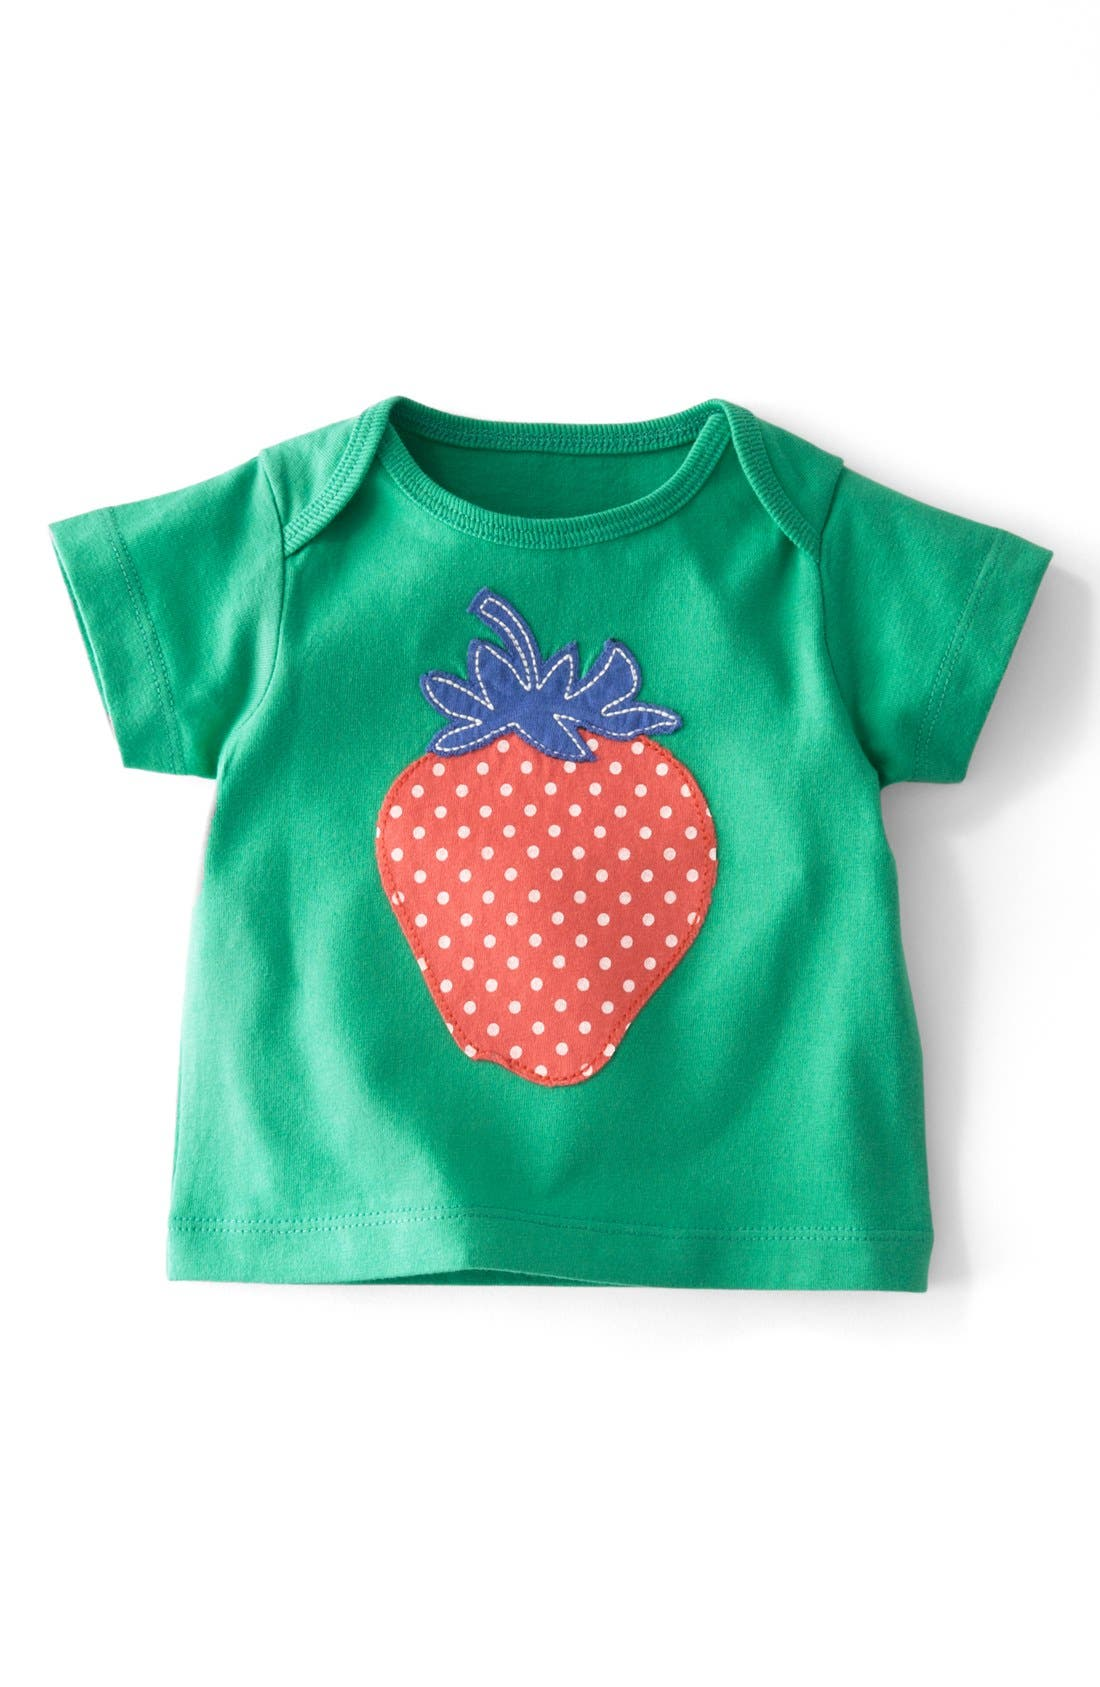 Main Image - Mini Boden 'Sunny Appliqué' Tee (Baby Girls)